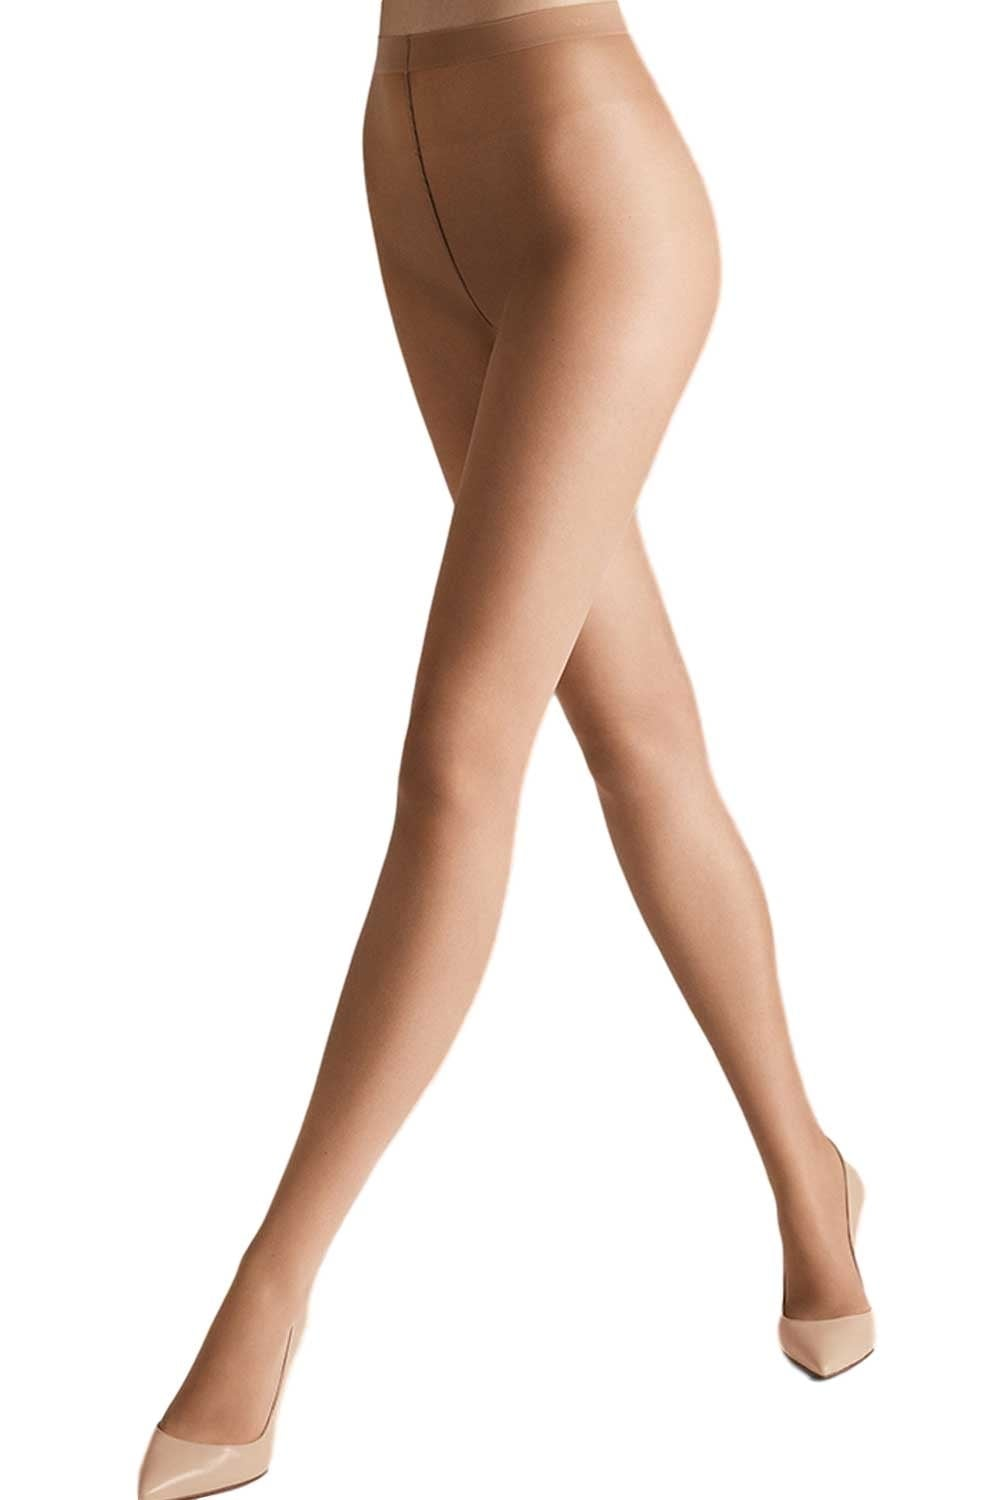 f596a59fb9eab Wolford Sheer 15 Tights | Wolford 15 Denier Tights